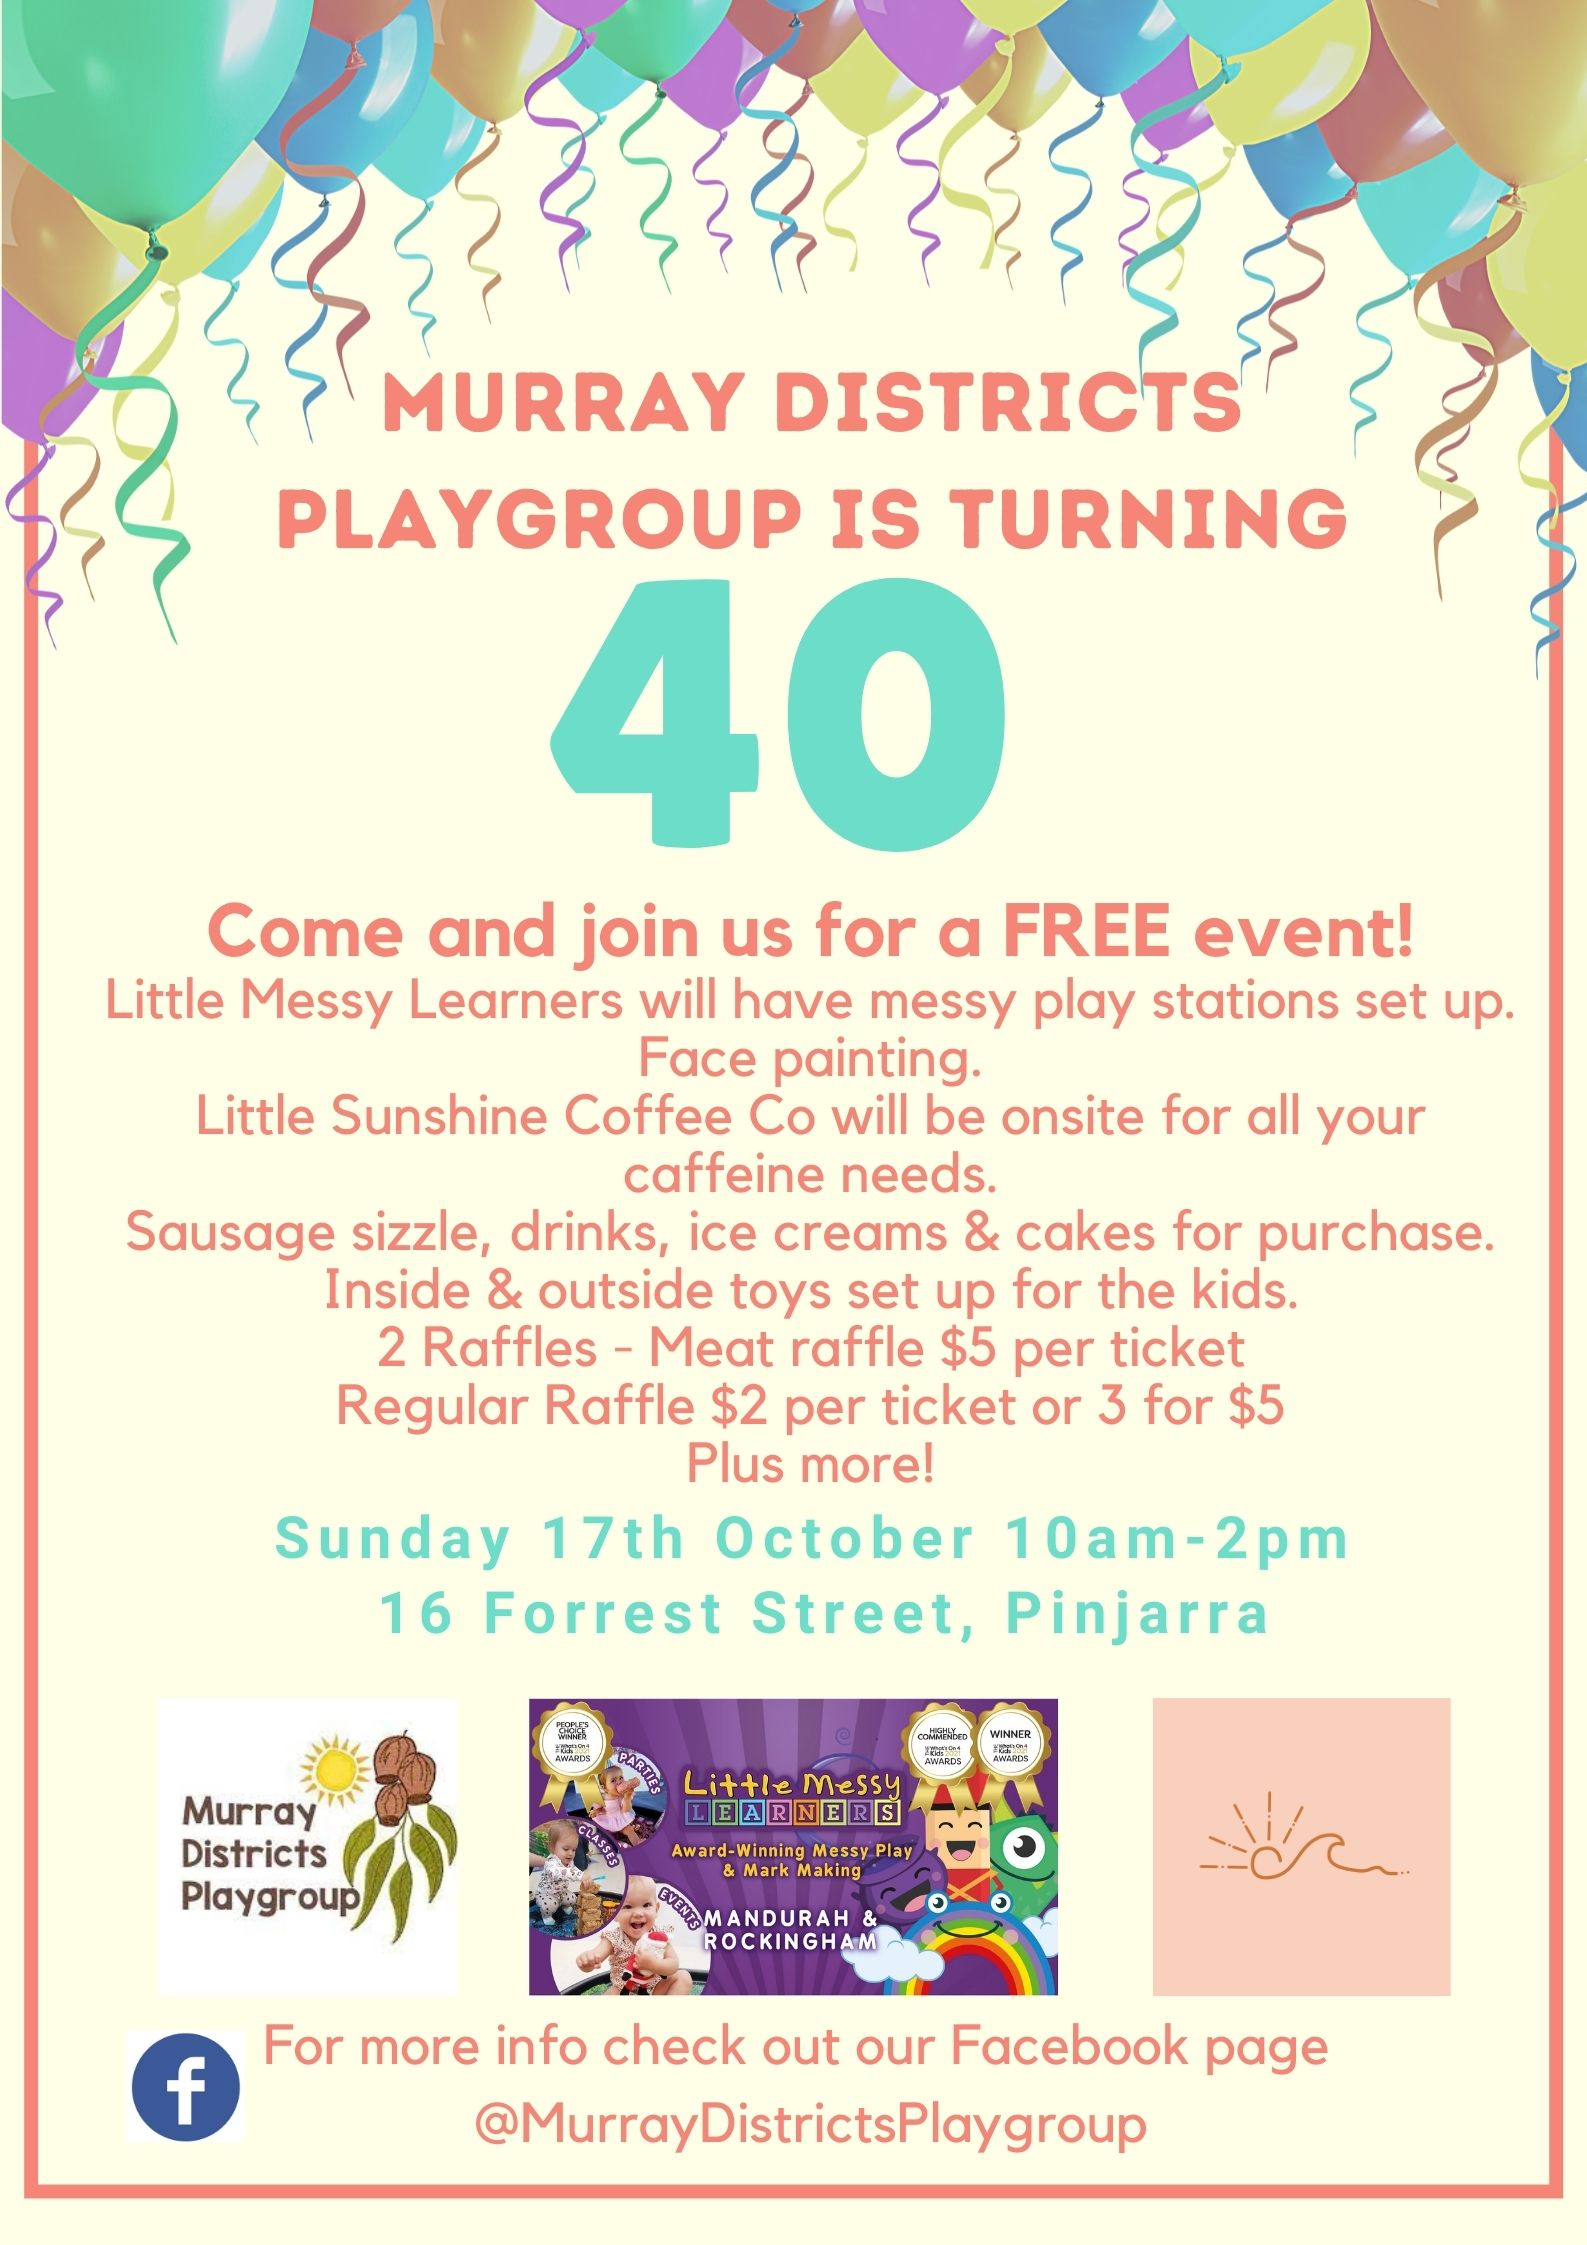 Murray Districts Playgroup is Turning 40